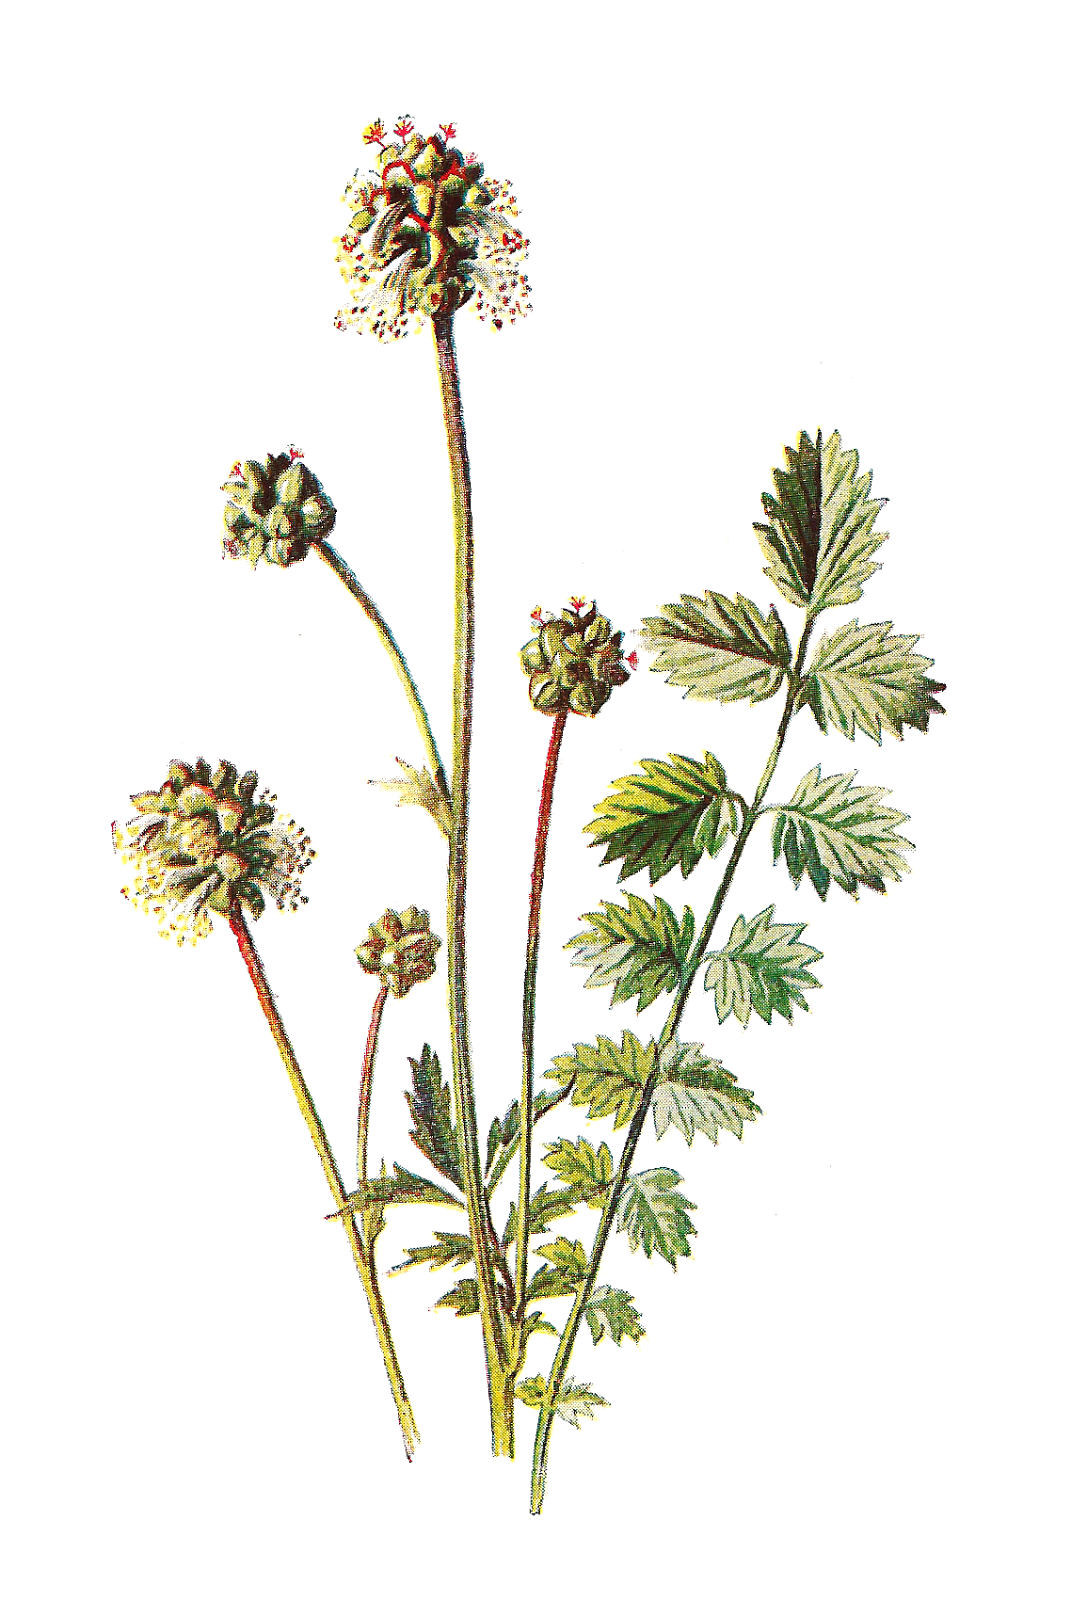 ... Images: Free Flower Graphic: Wildflower Clip Art of Salad Burnet